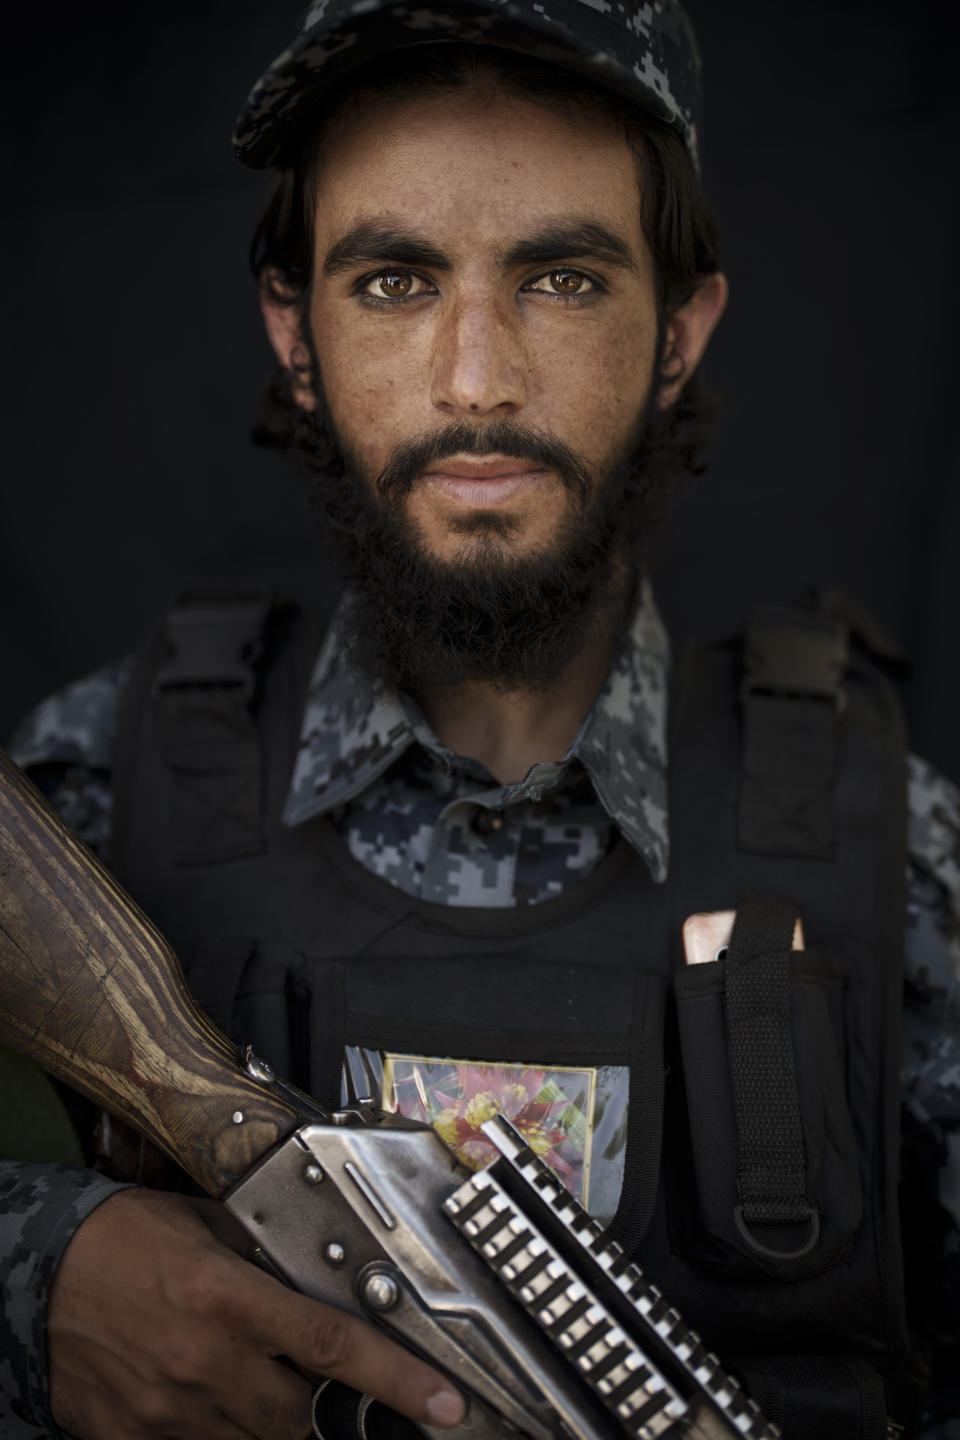 Taliban fighter Nazir Ahmed, 22, poses for a photo wearing a new police uniform in Kabul, Afghanistan, Thursday, Sept. 16, 2021. Ahmed is from Parwan province and has been with Taliban forces for 5 years. (AP Photo/Felipe Dana)